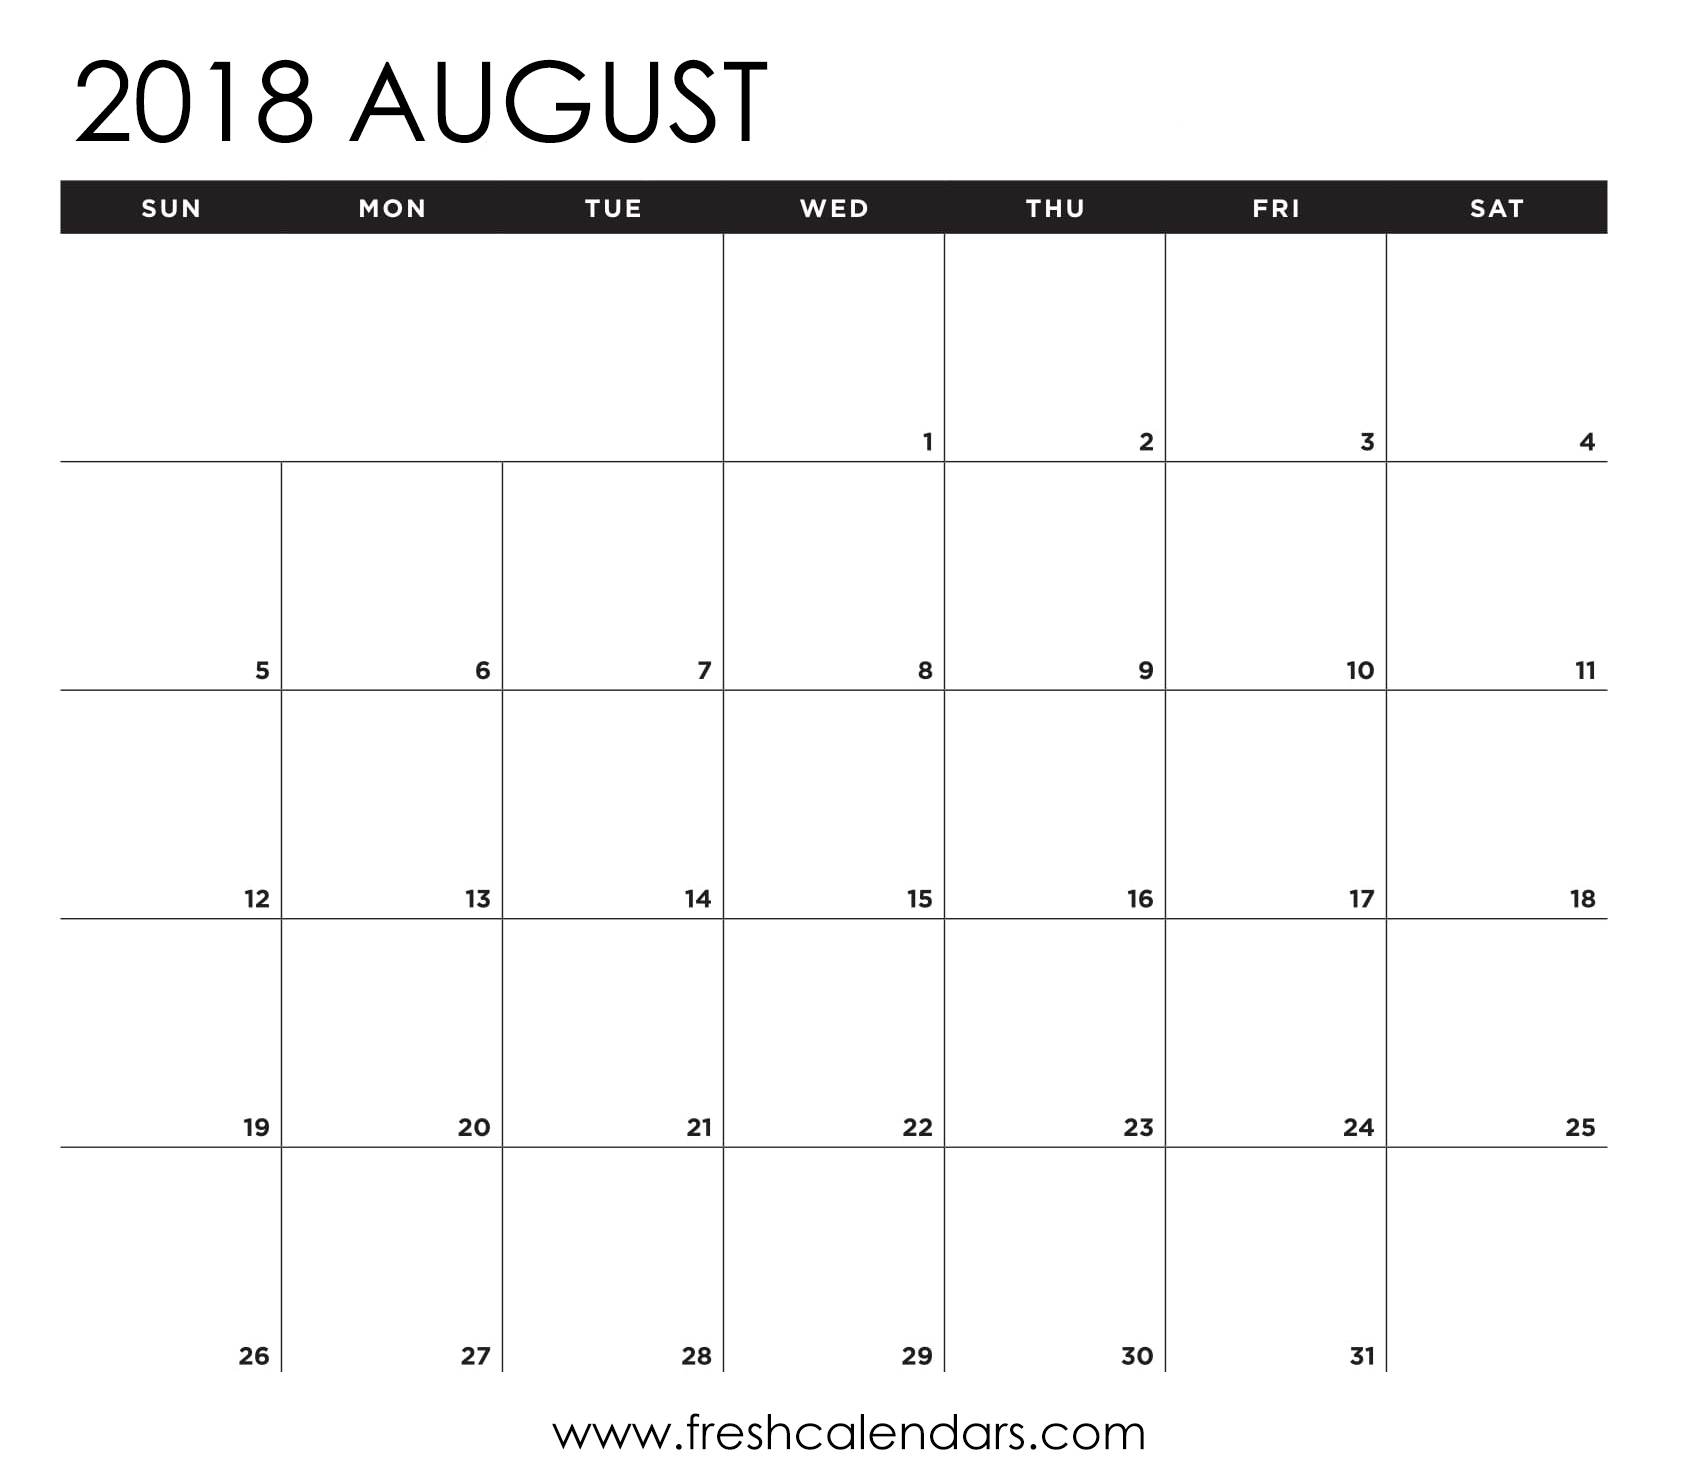 August 2018 Calendar Printable - Fresh Calendars inside August Printable Calendar Weekly Template